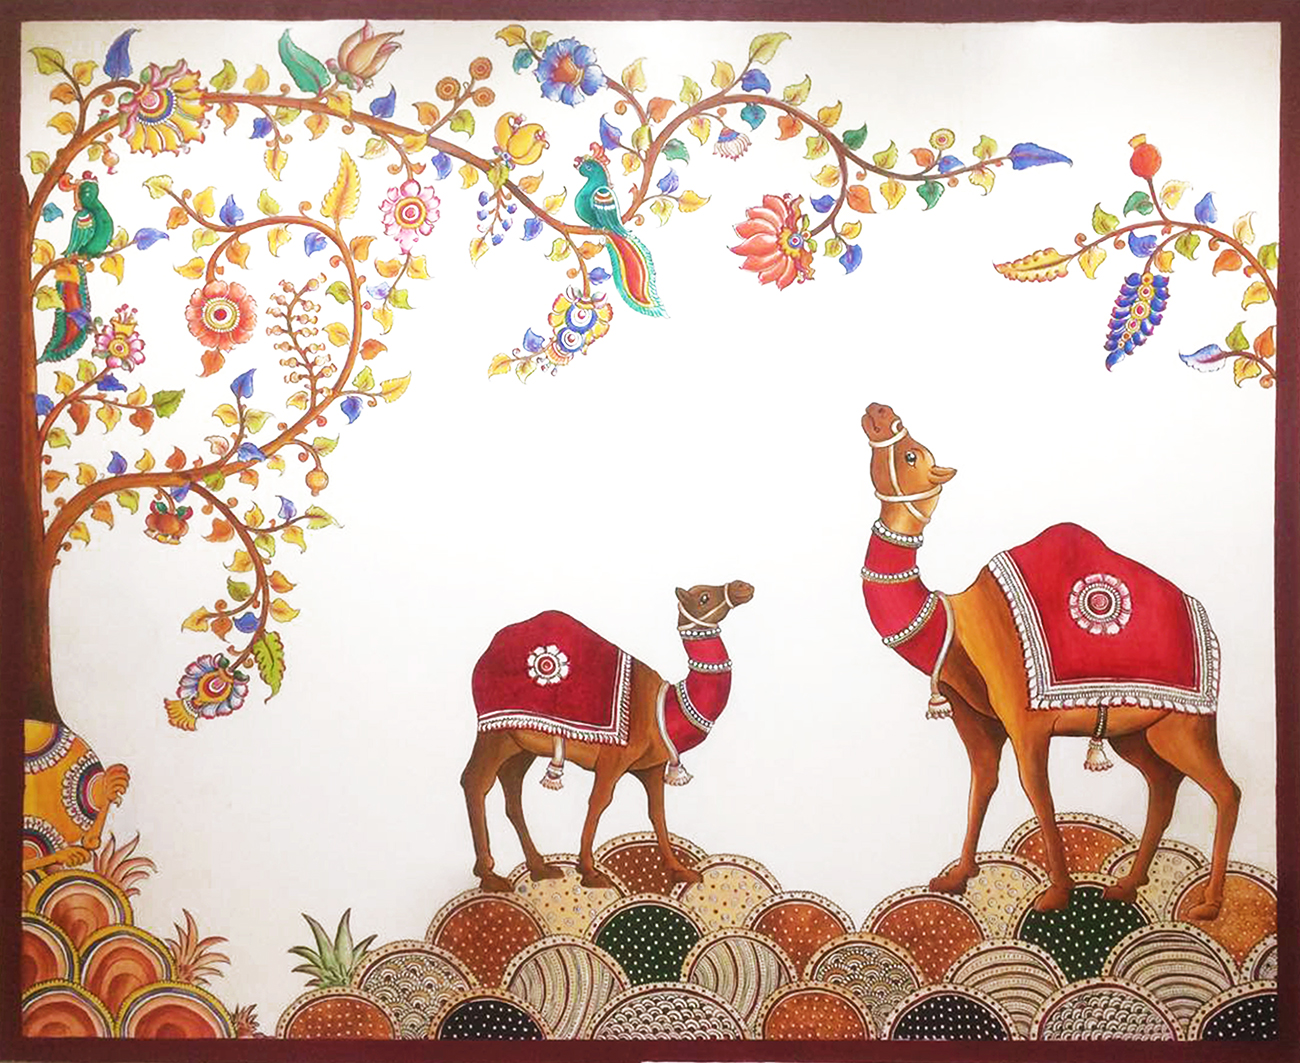 Camels have long been a symbol of resilience. This is a Kalamkari desert scene painted as a wall mural in the lobby area showing the qualities of the desert camel- hardy and persevering